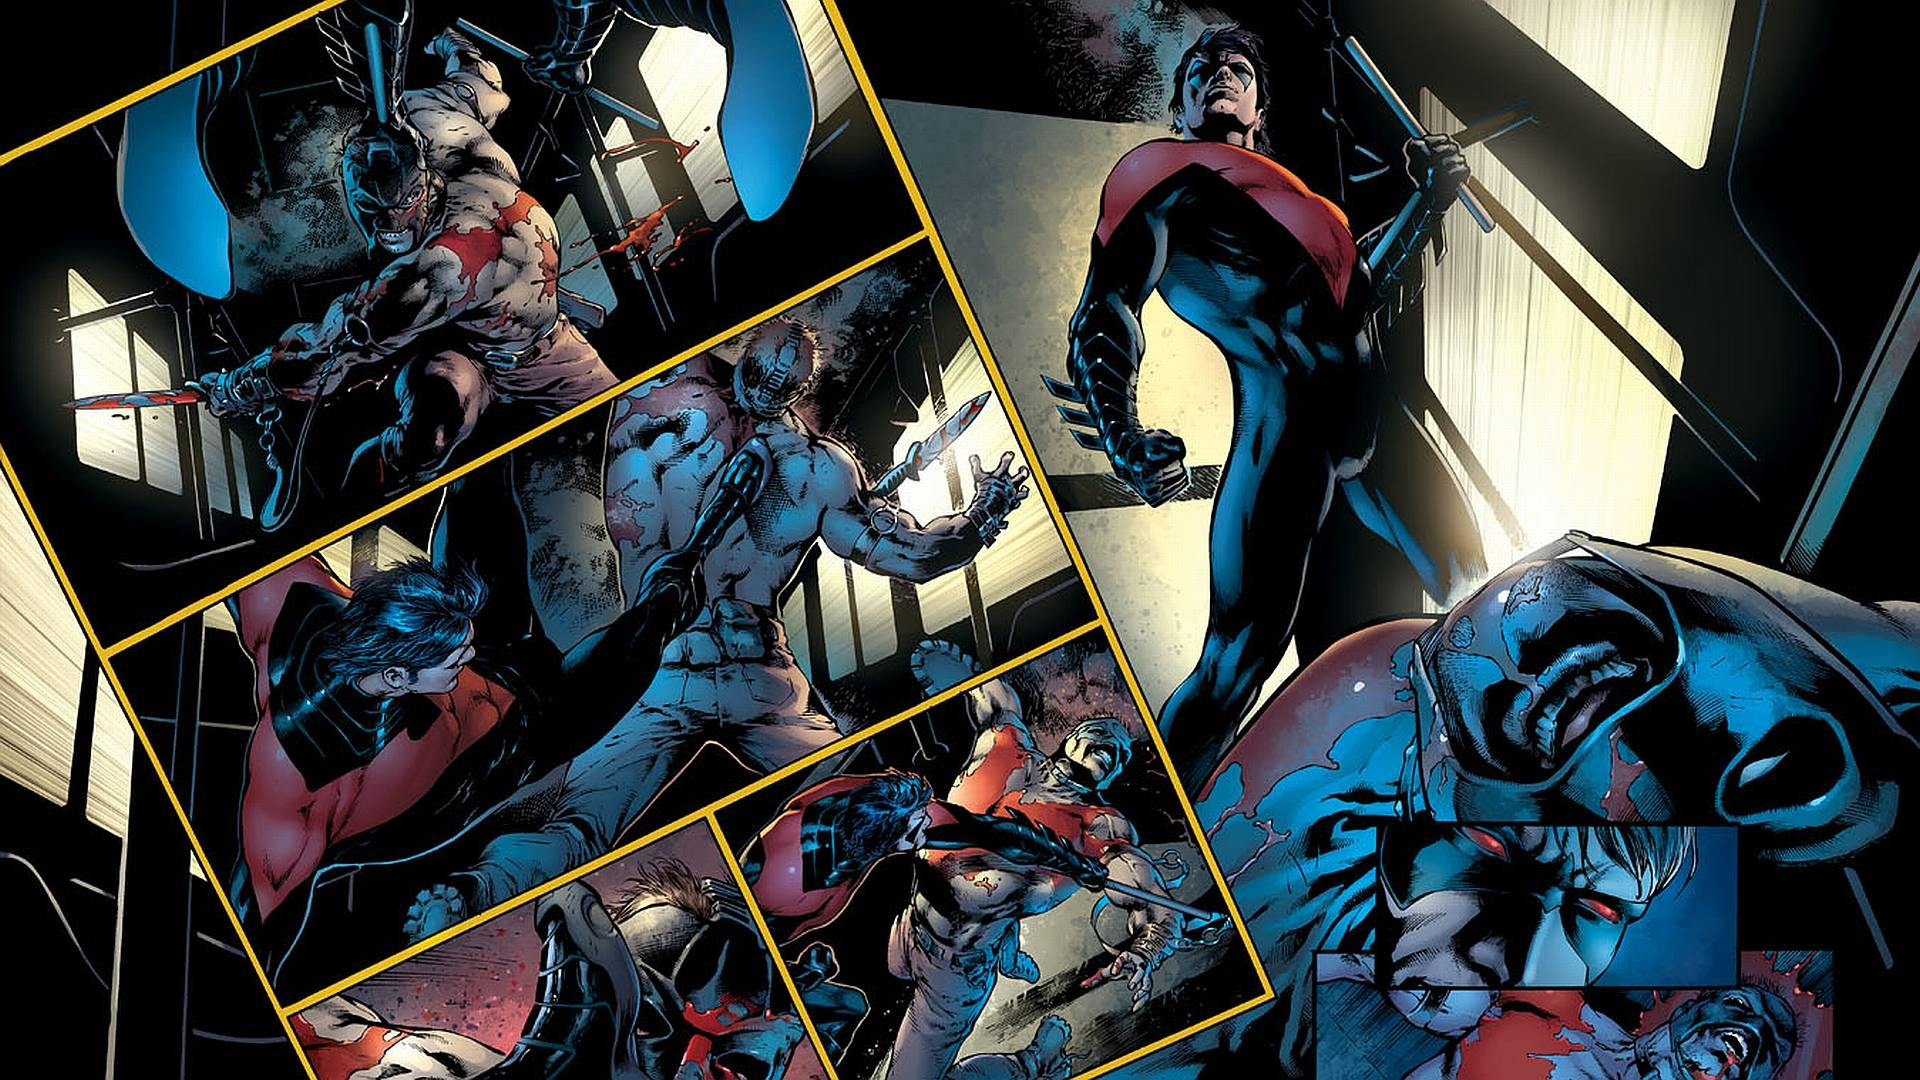 Wallpapers For Nightwing And Batman Wallpaper 1920x1080